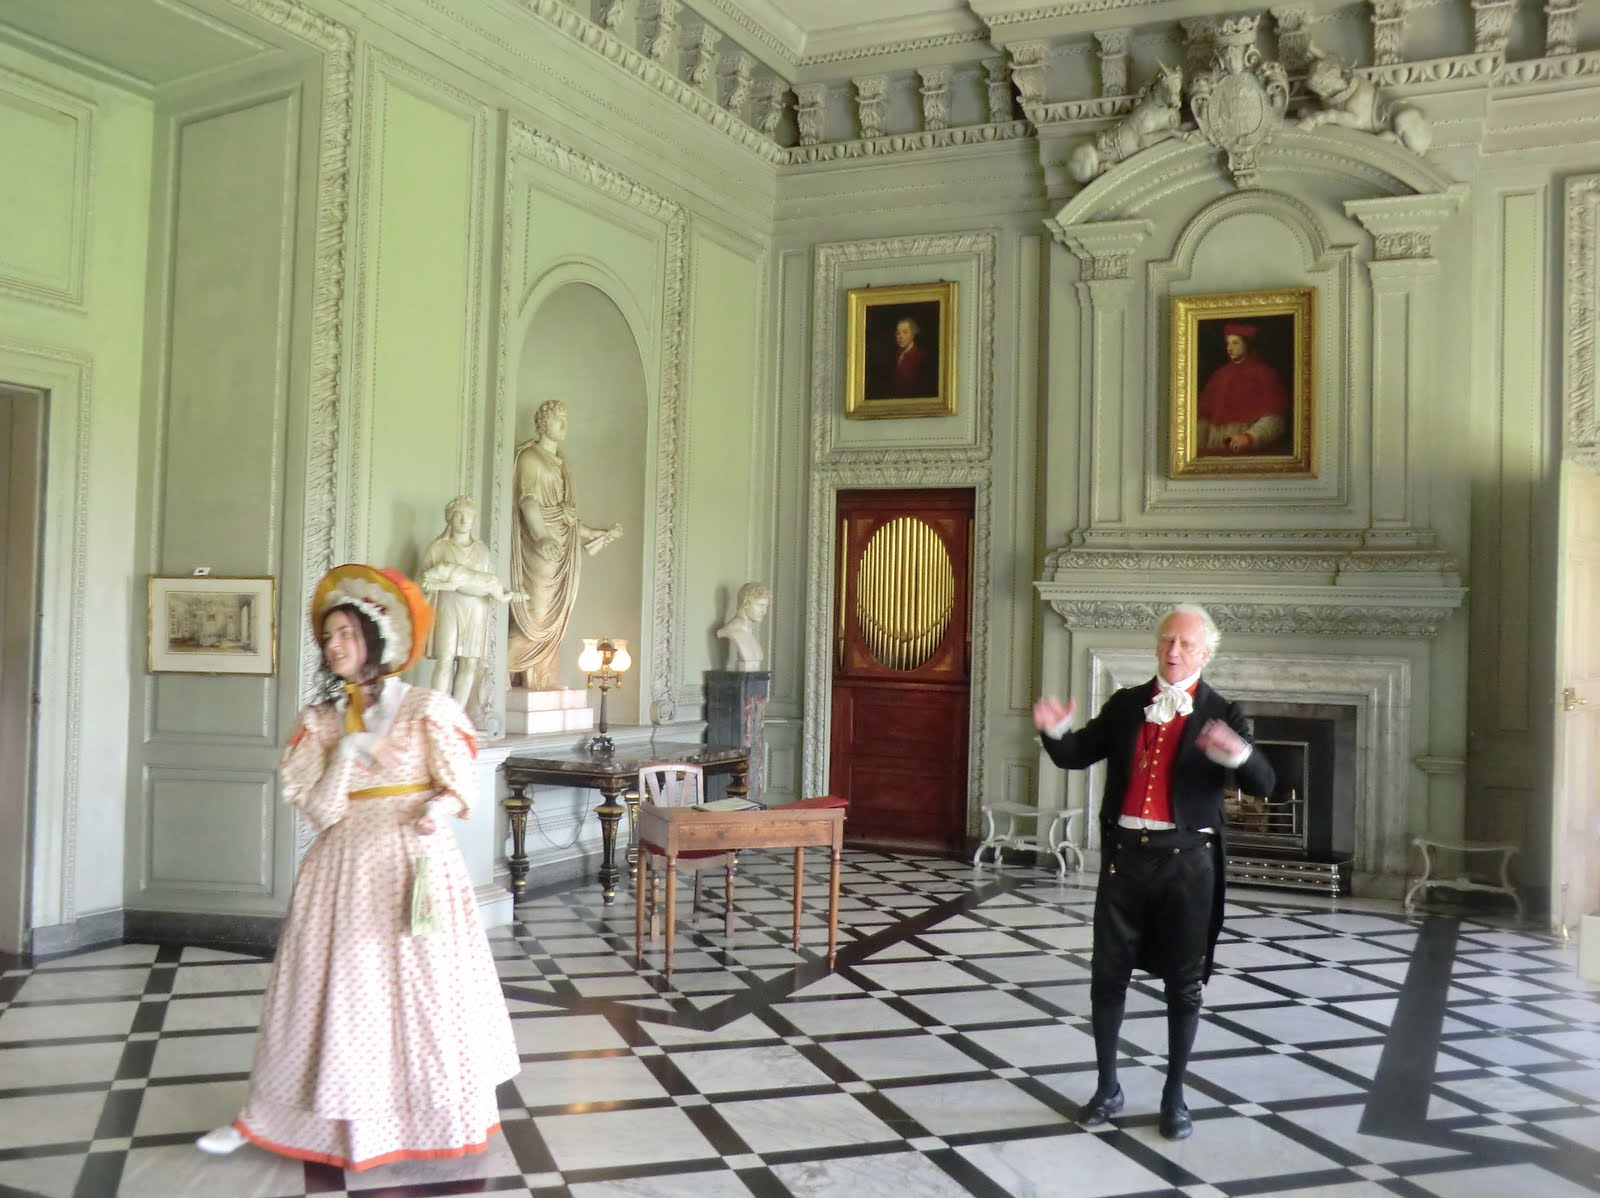 CIMG4006 Petworth House on Heritage Open Day (actors playing Lord and Lady Egremont)